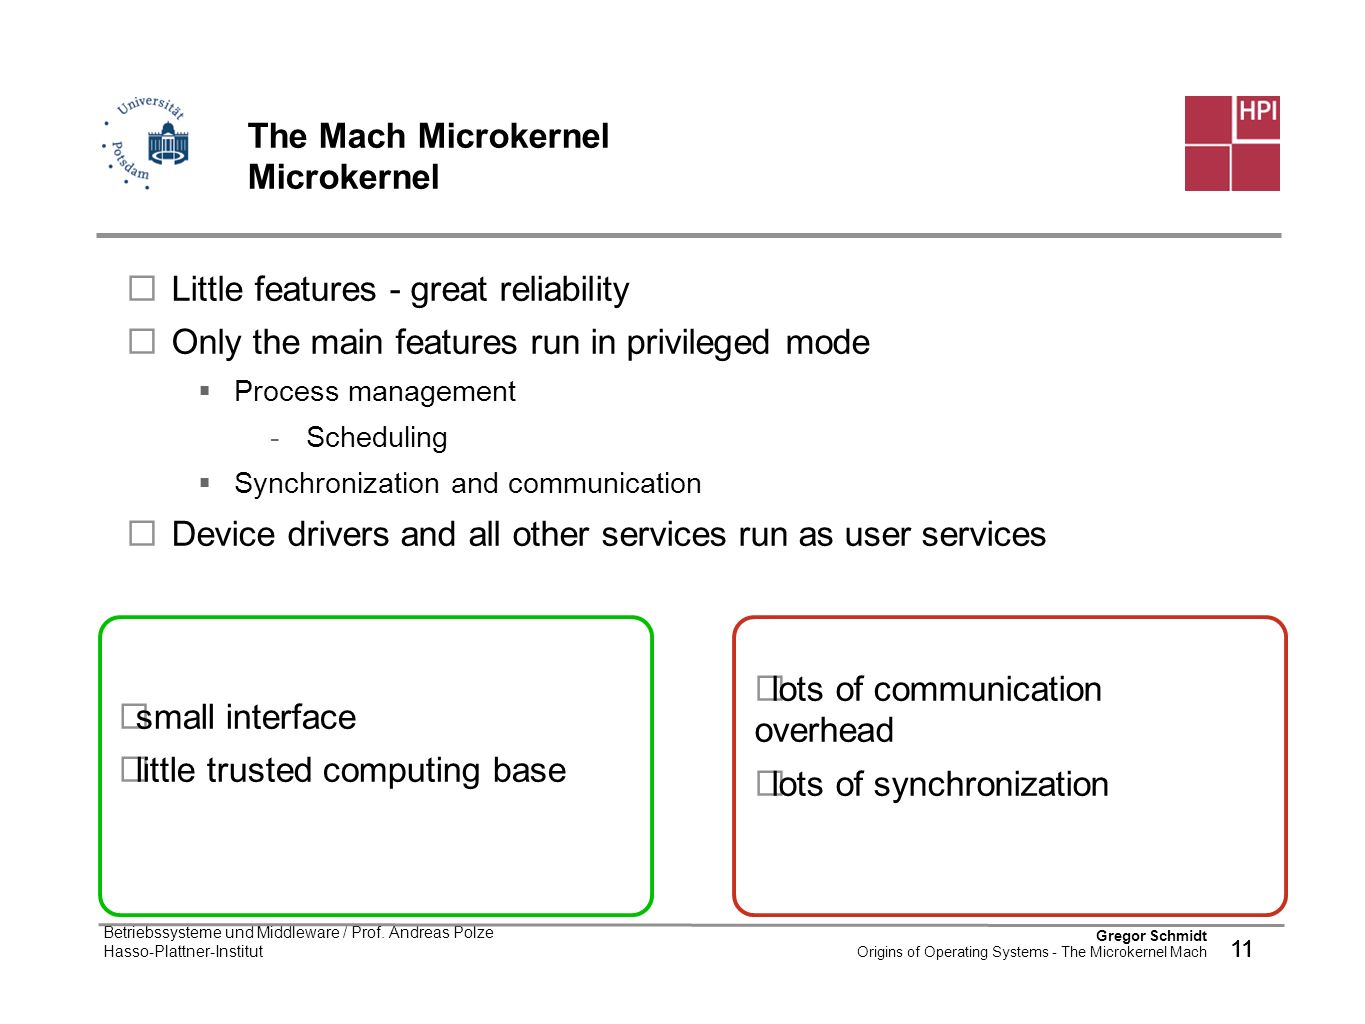 The Mach Microkernel Microkernel